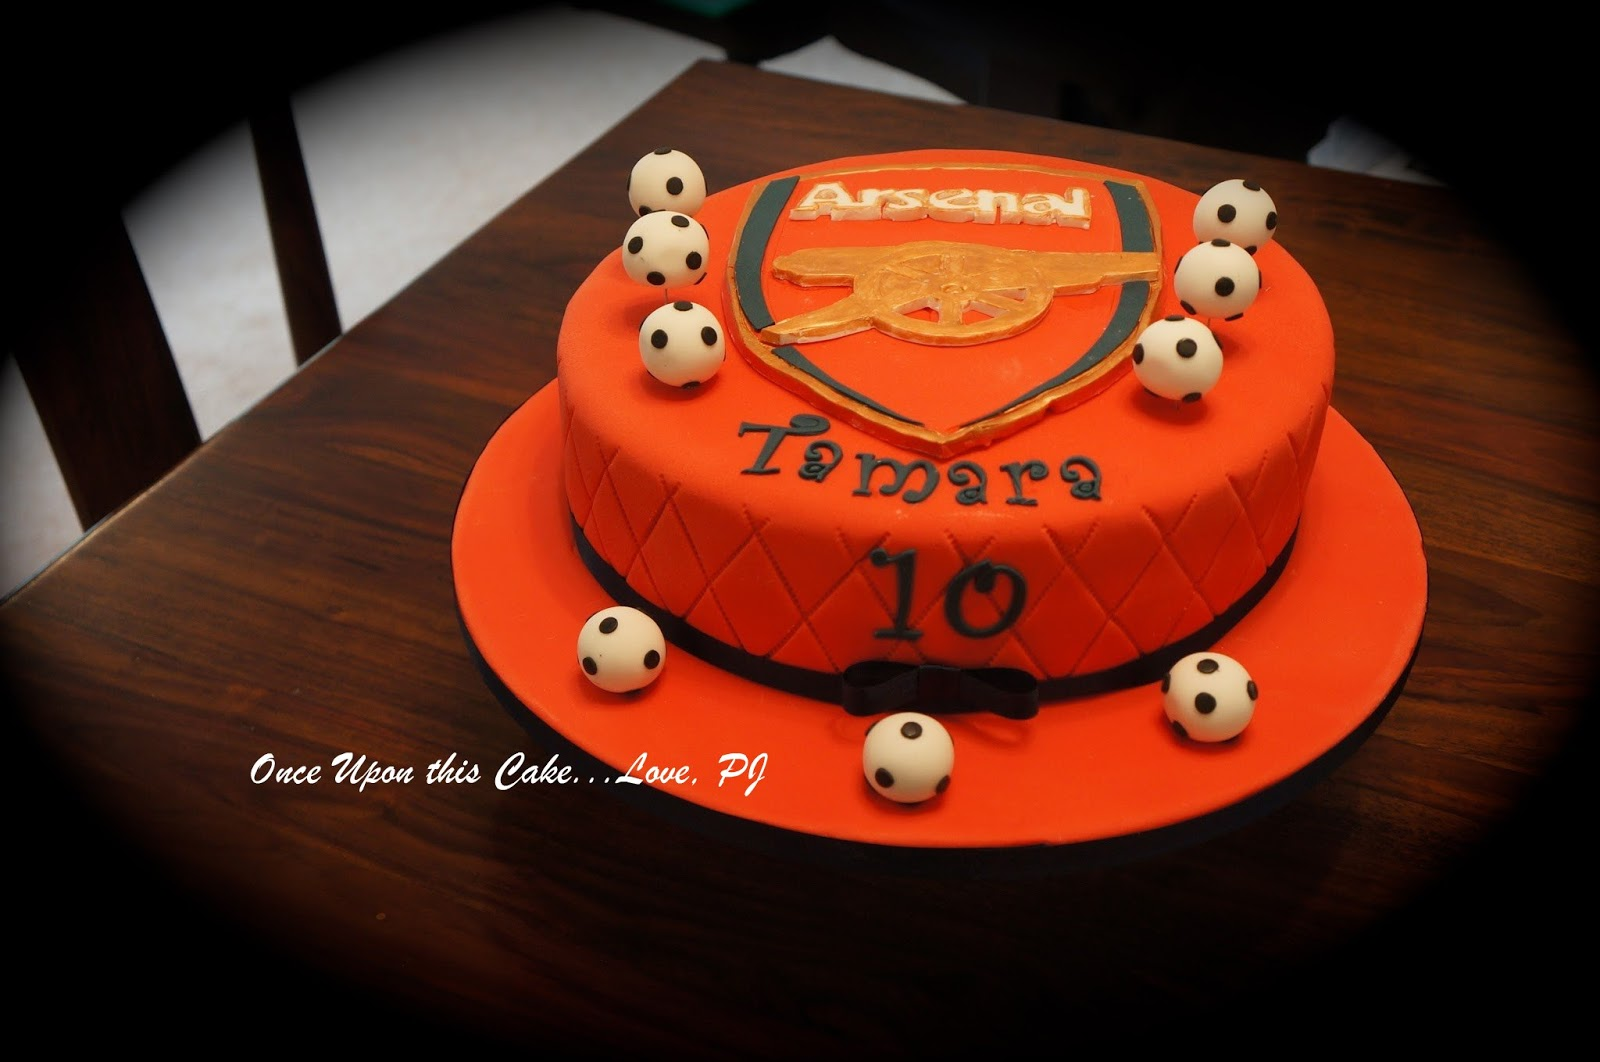 Arsenal themed birthday cake Once Upon This Cake Love PJ